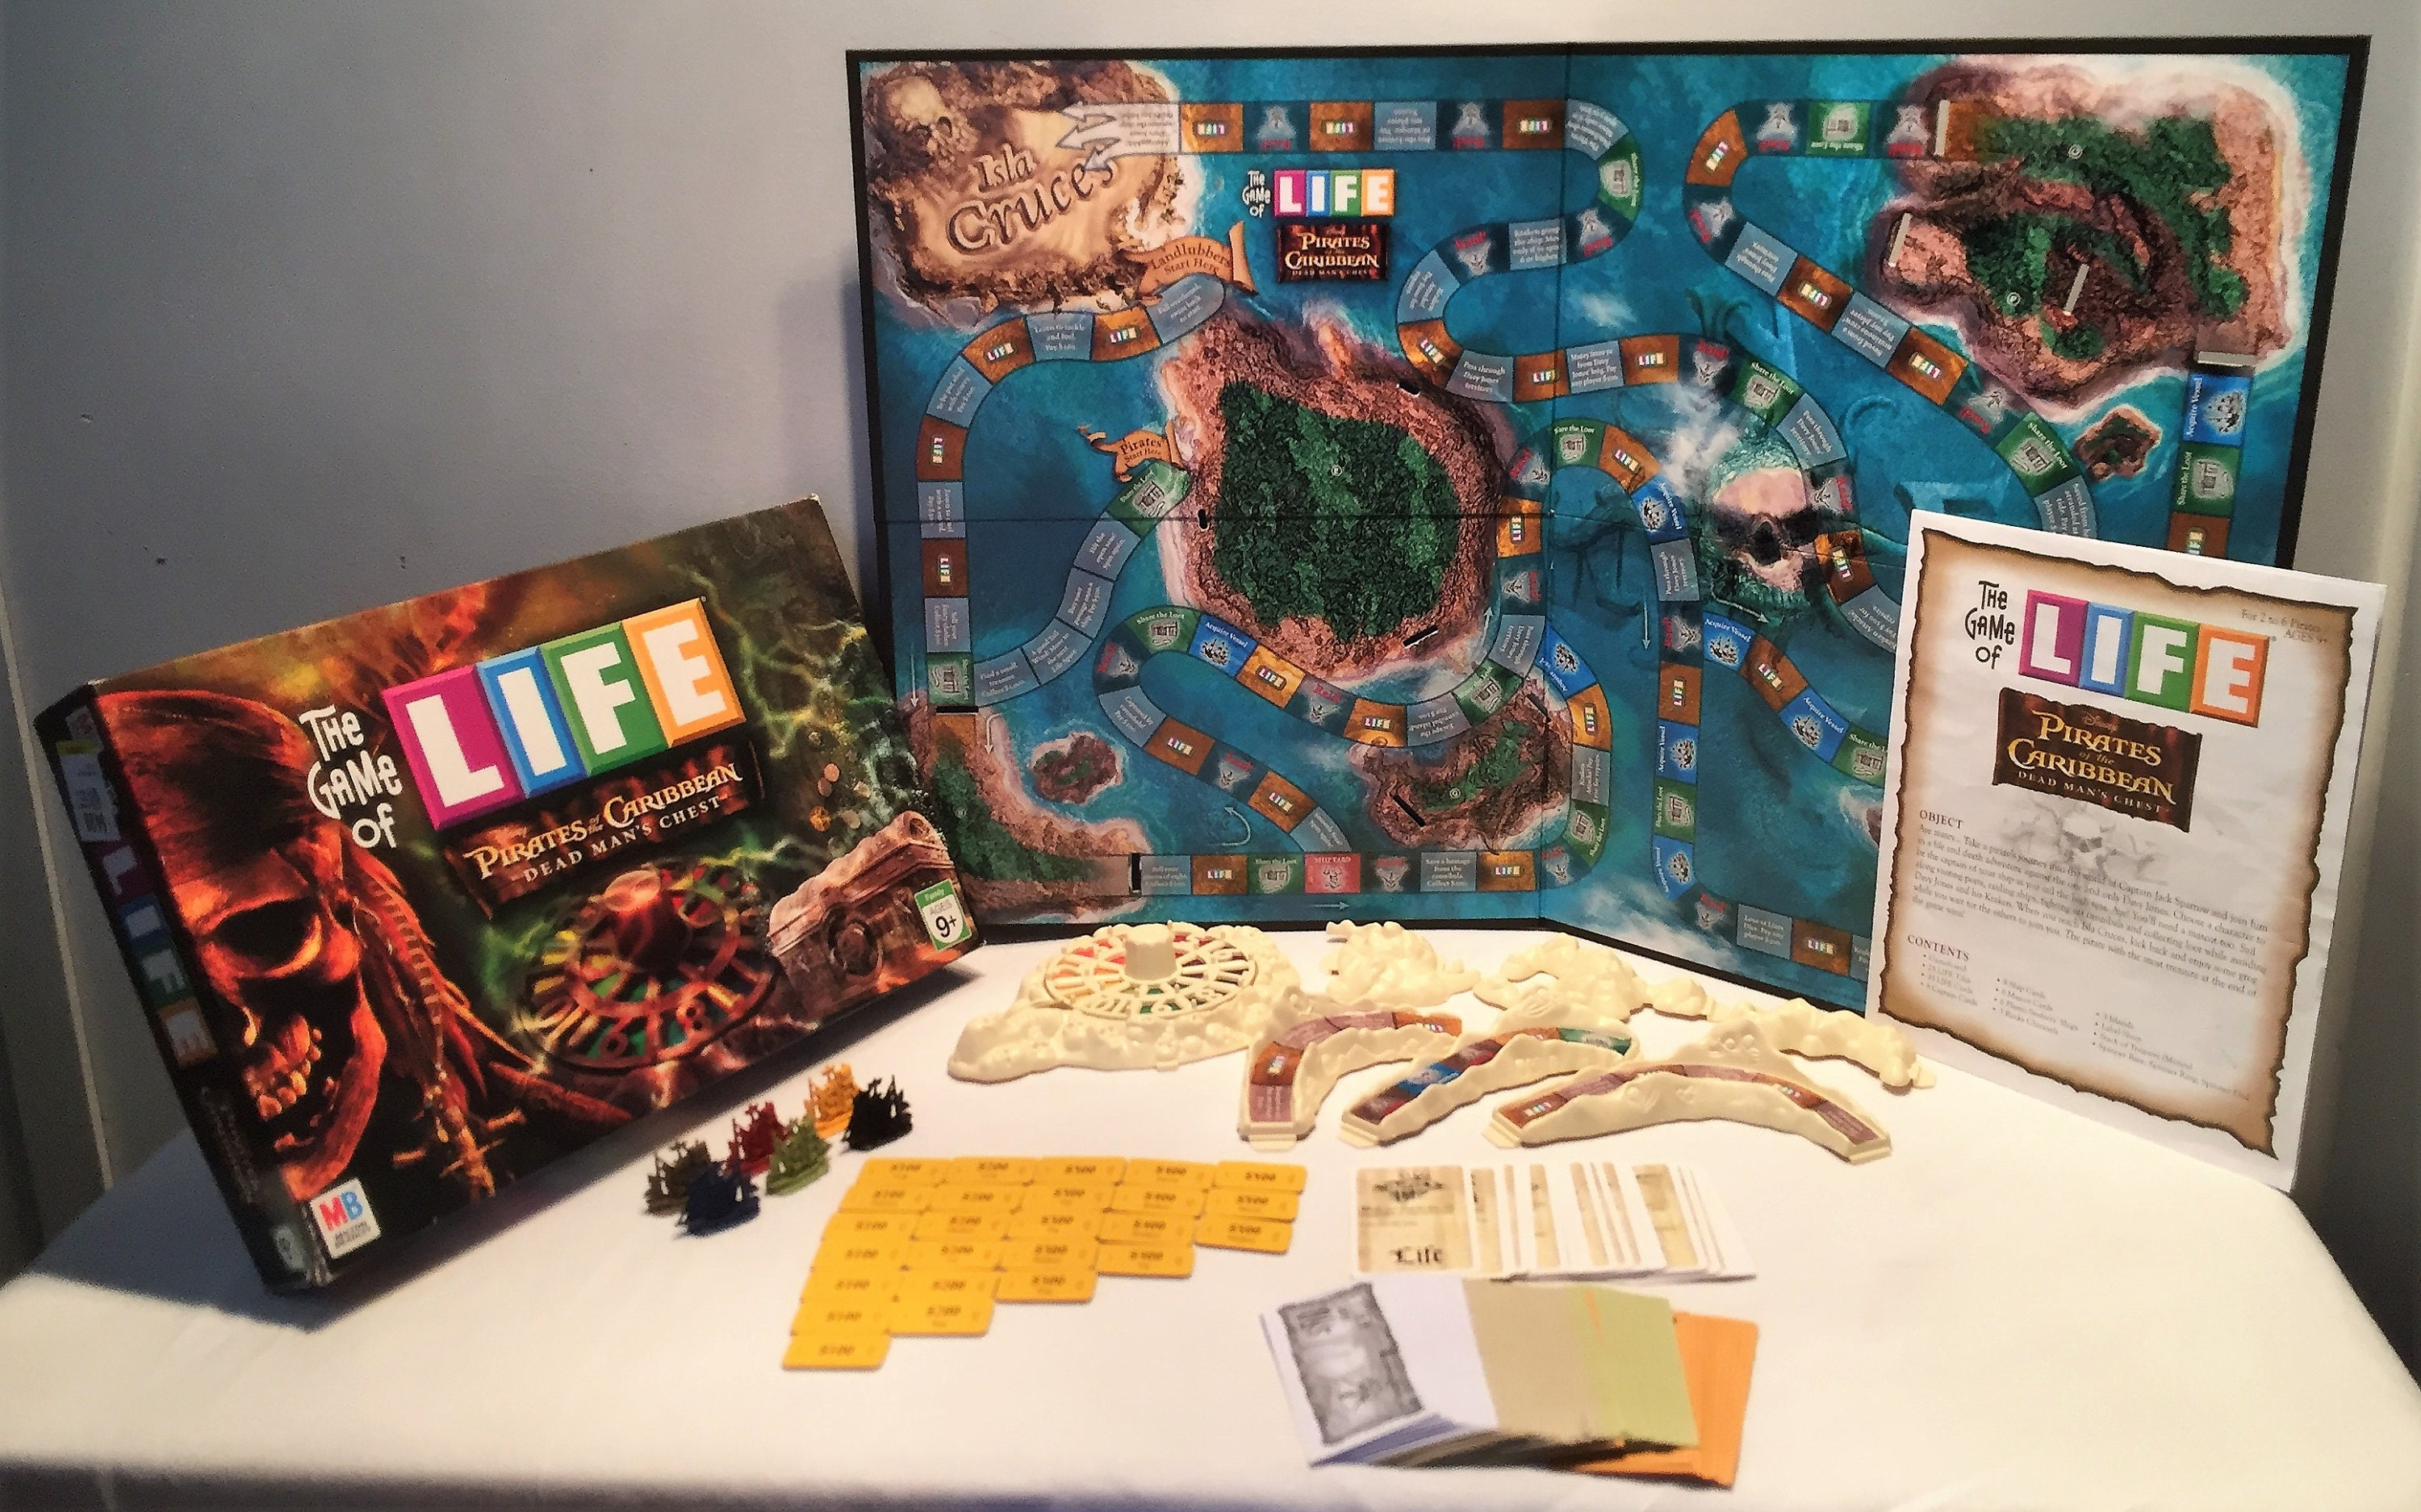 Game Of Life - Pirates Of The Caribbean Dead Man's Chest